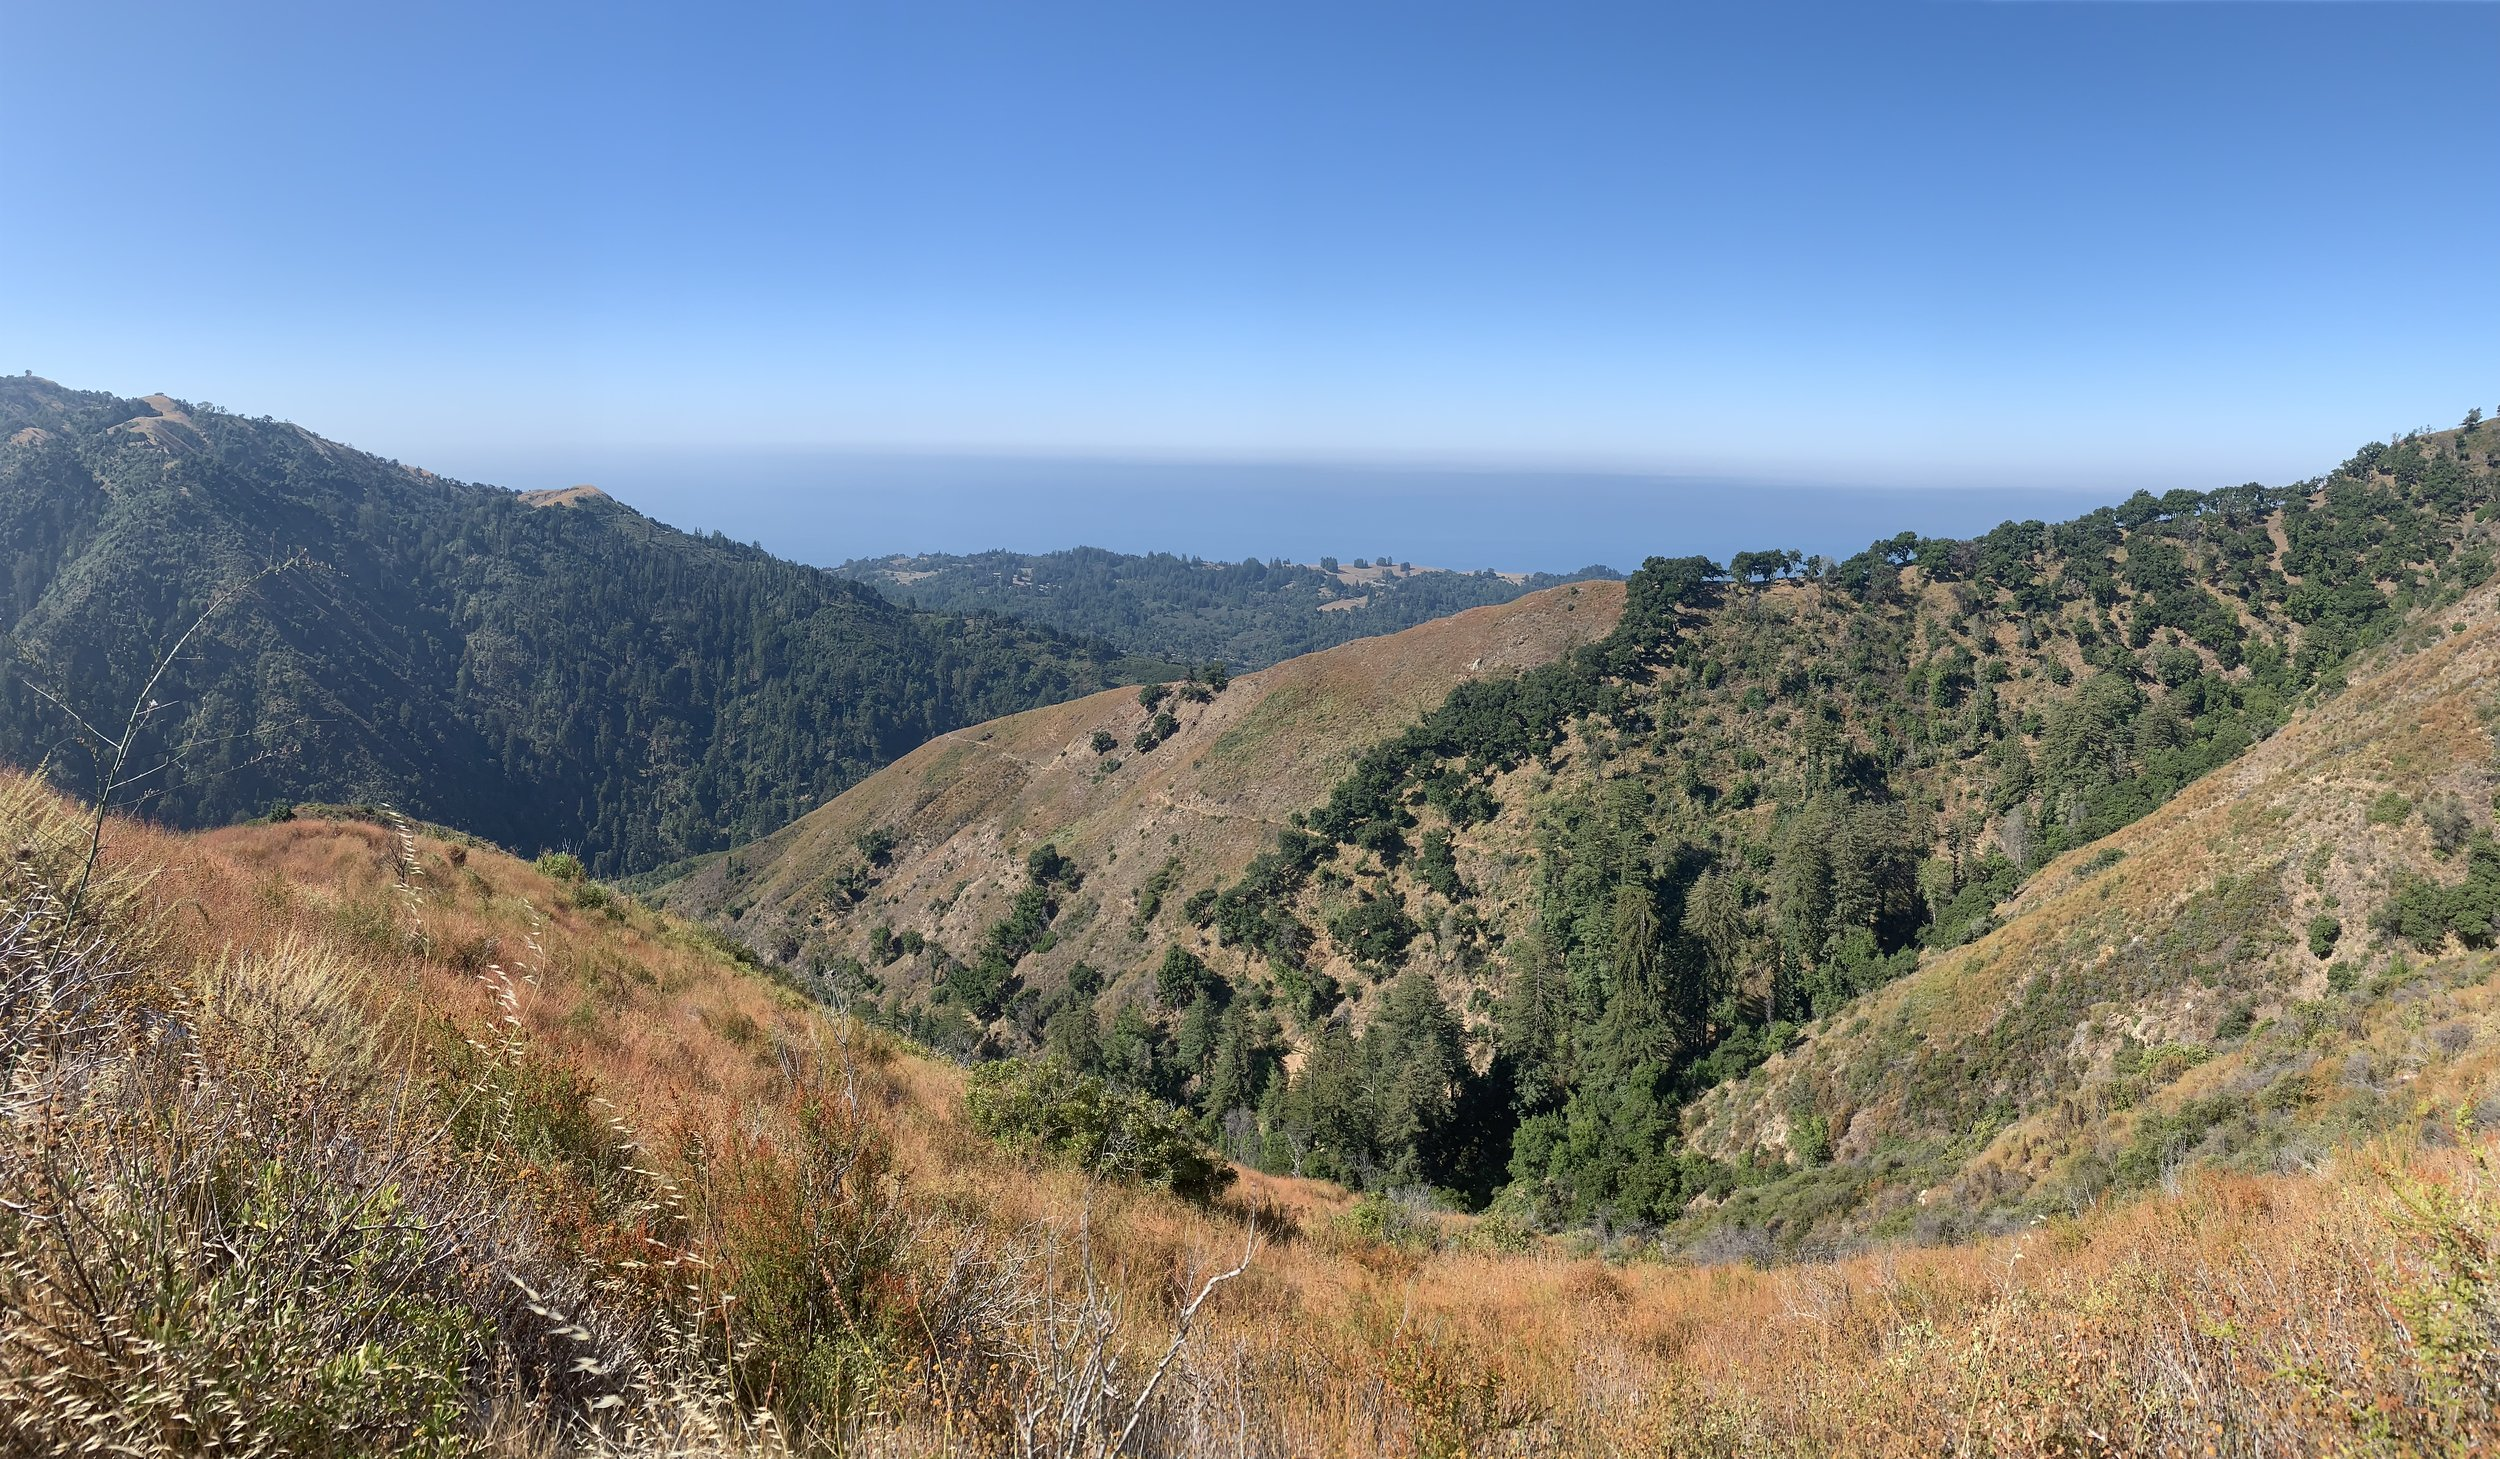 View of the Pacific Ocean from the Mount Manuel Trail